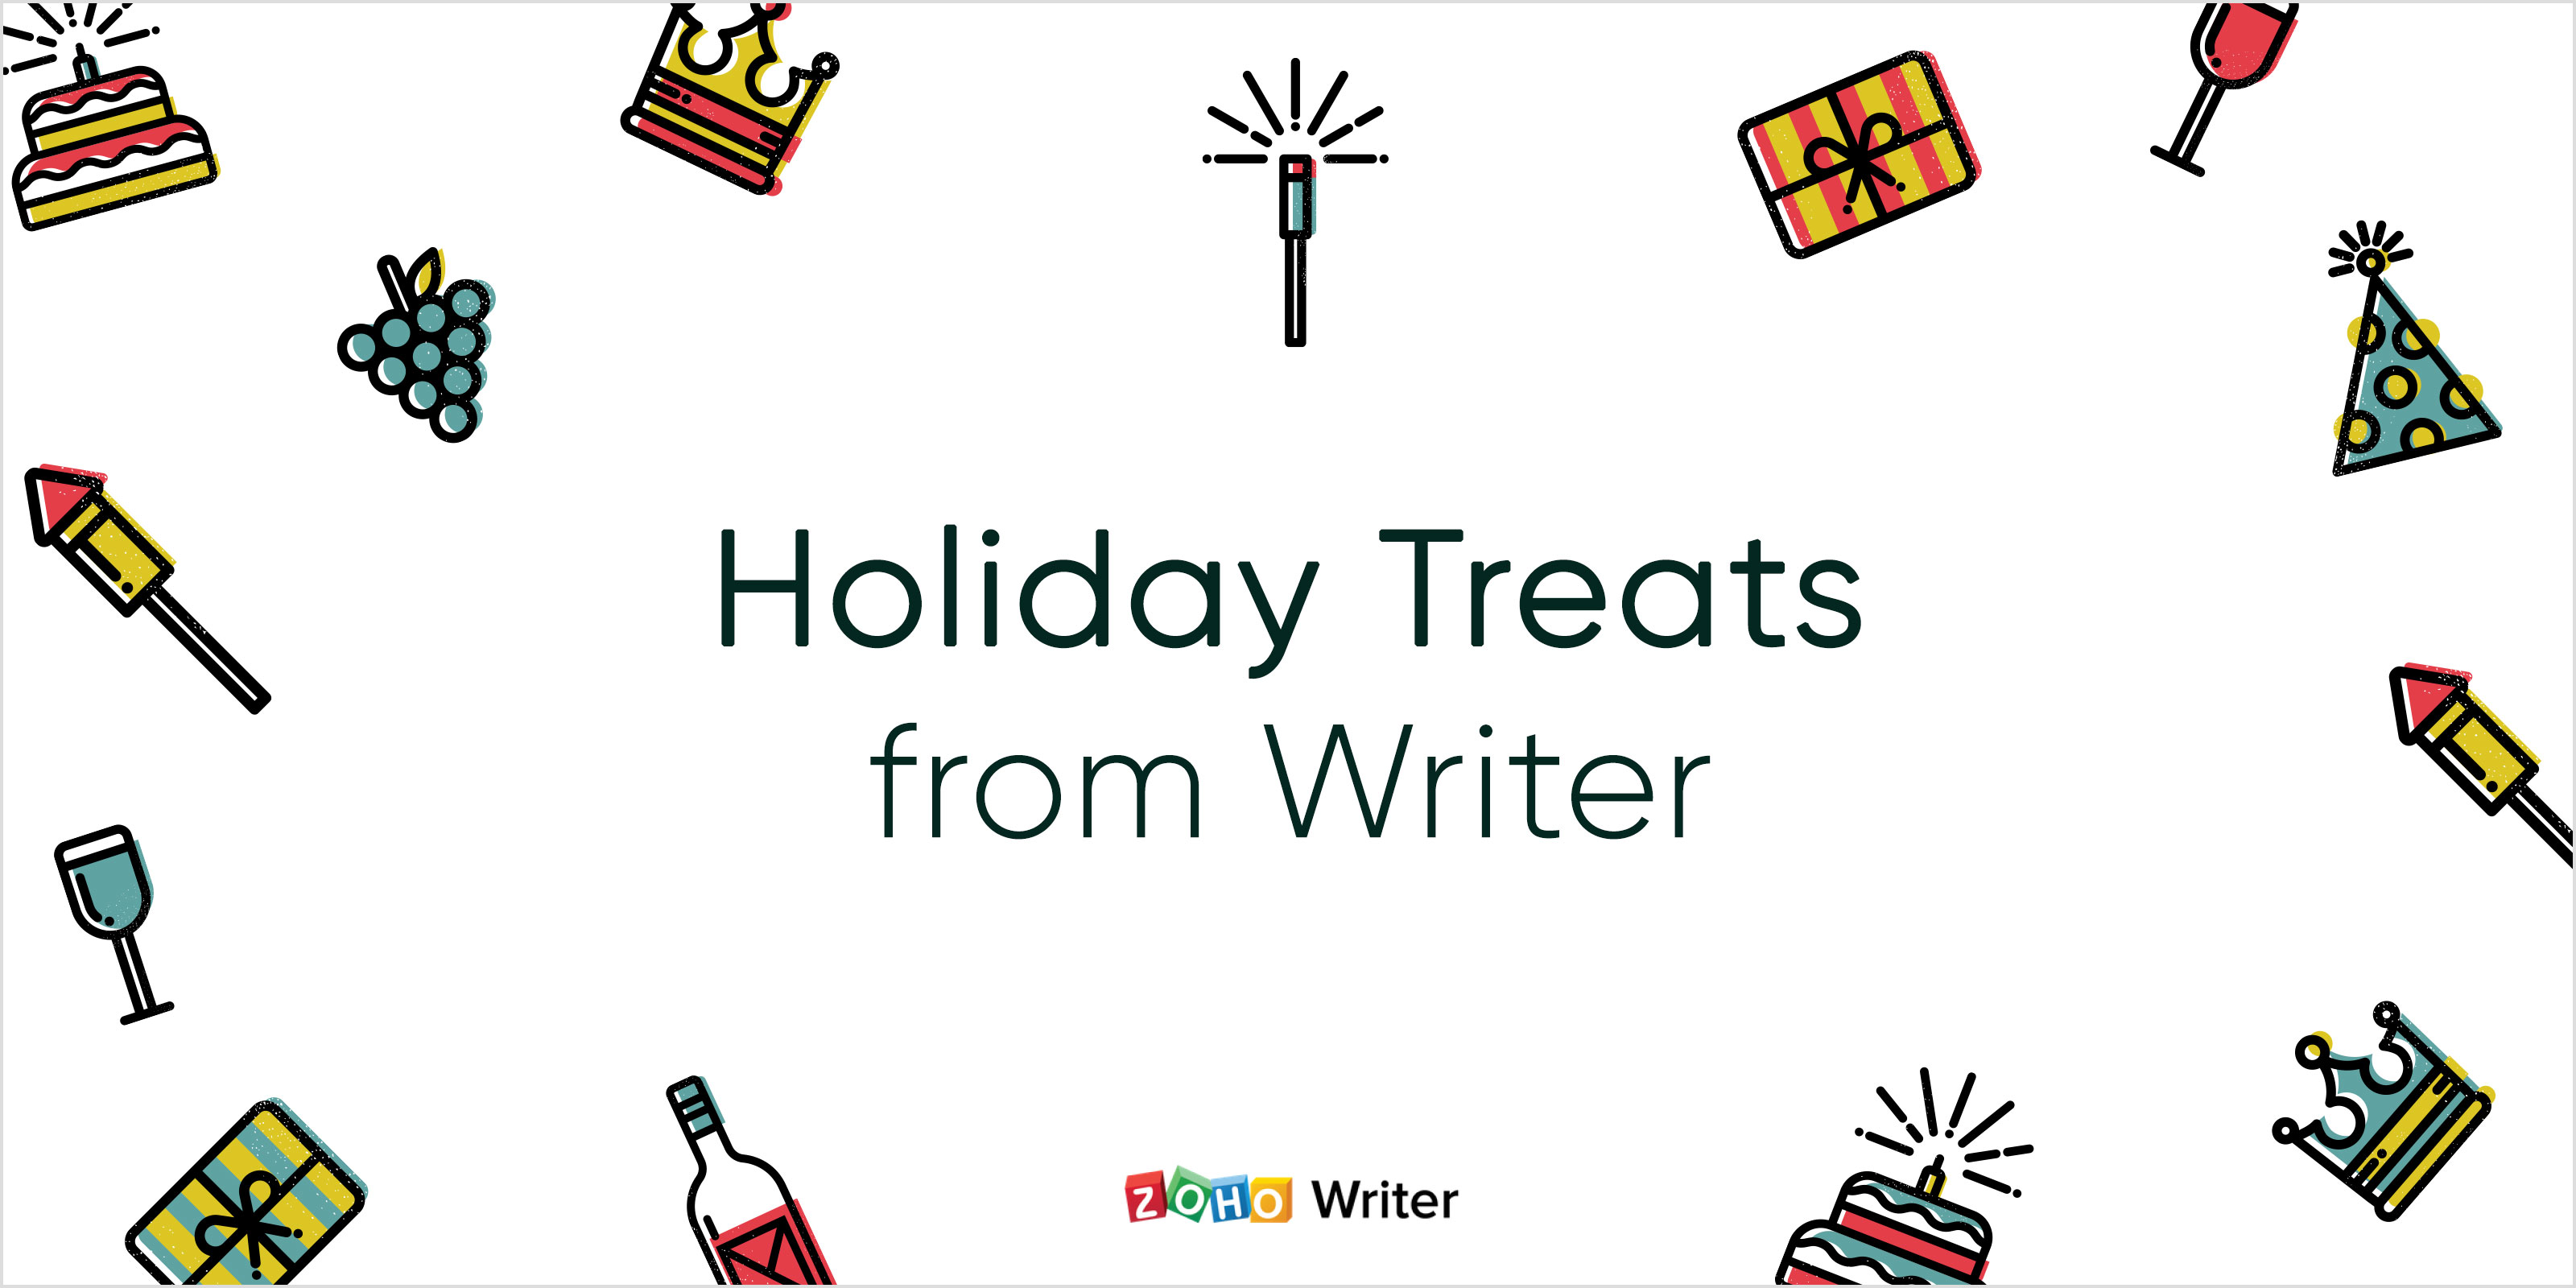 5 holiday treats from Writer